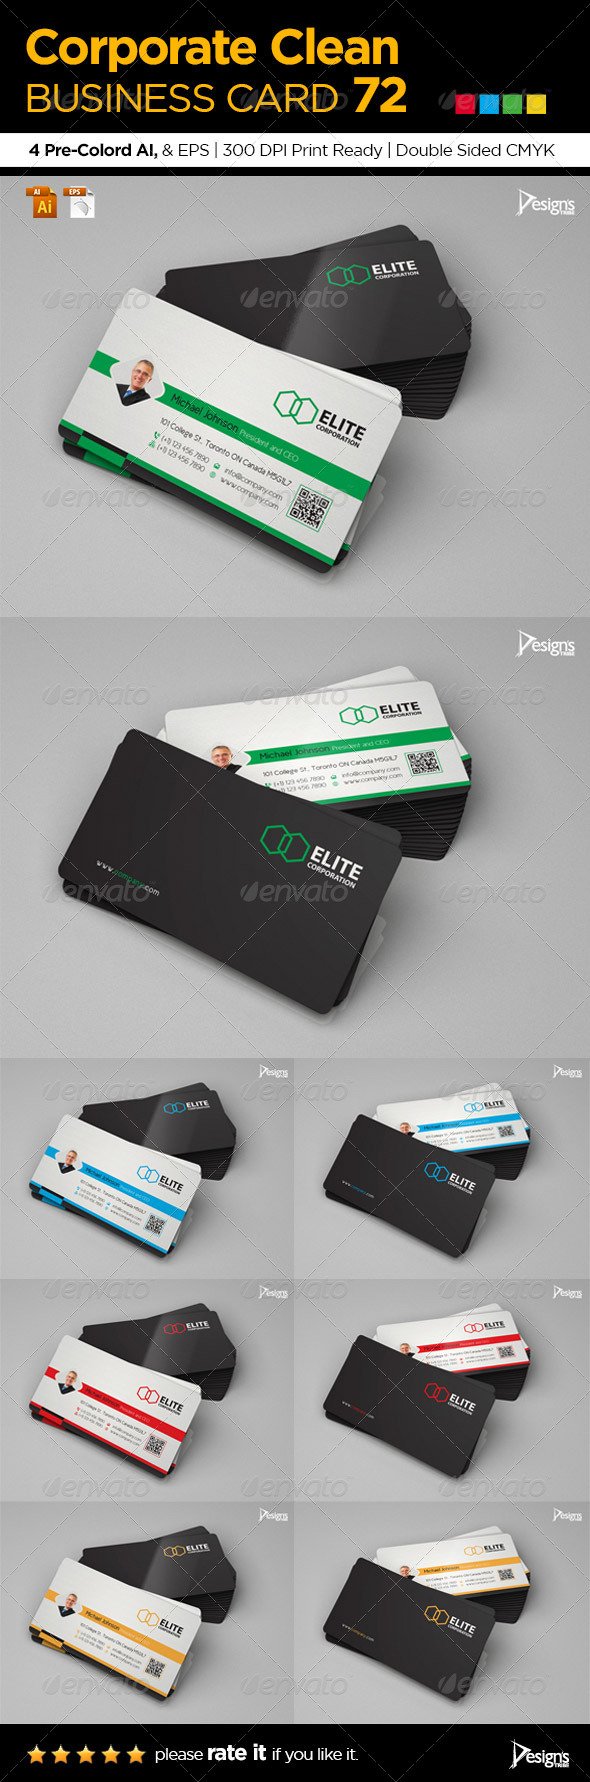 GraphicRiver Corporate Clean Business Card 72 6642782